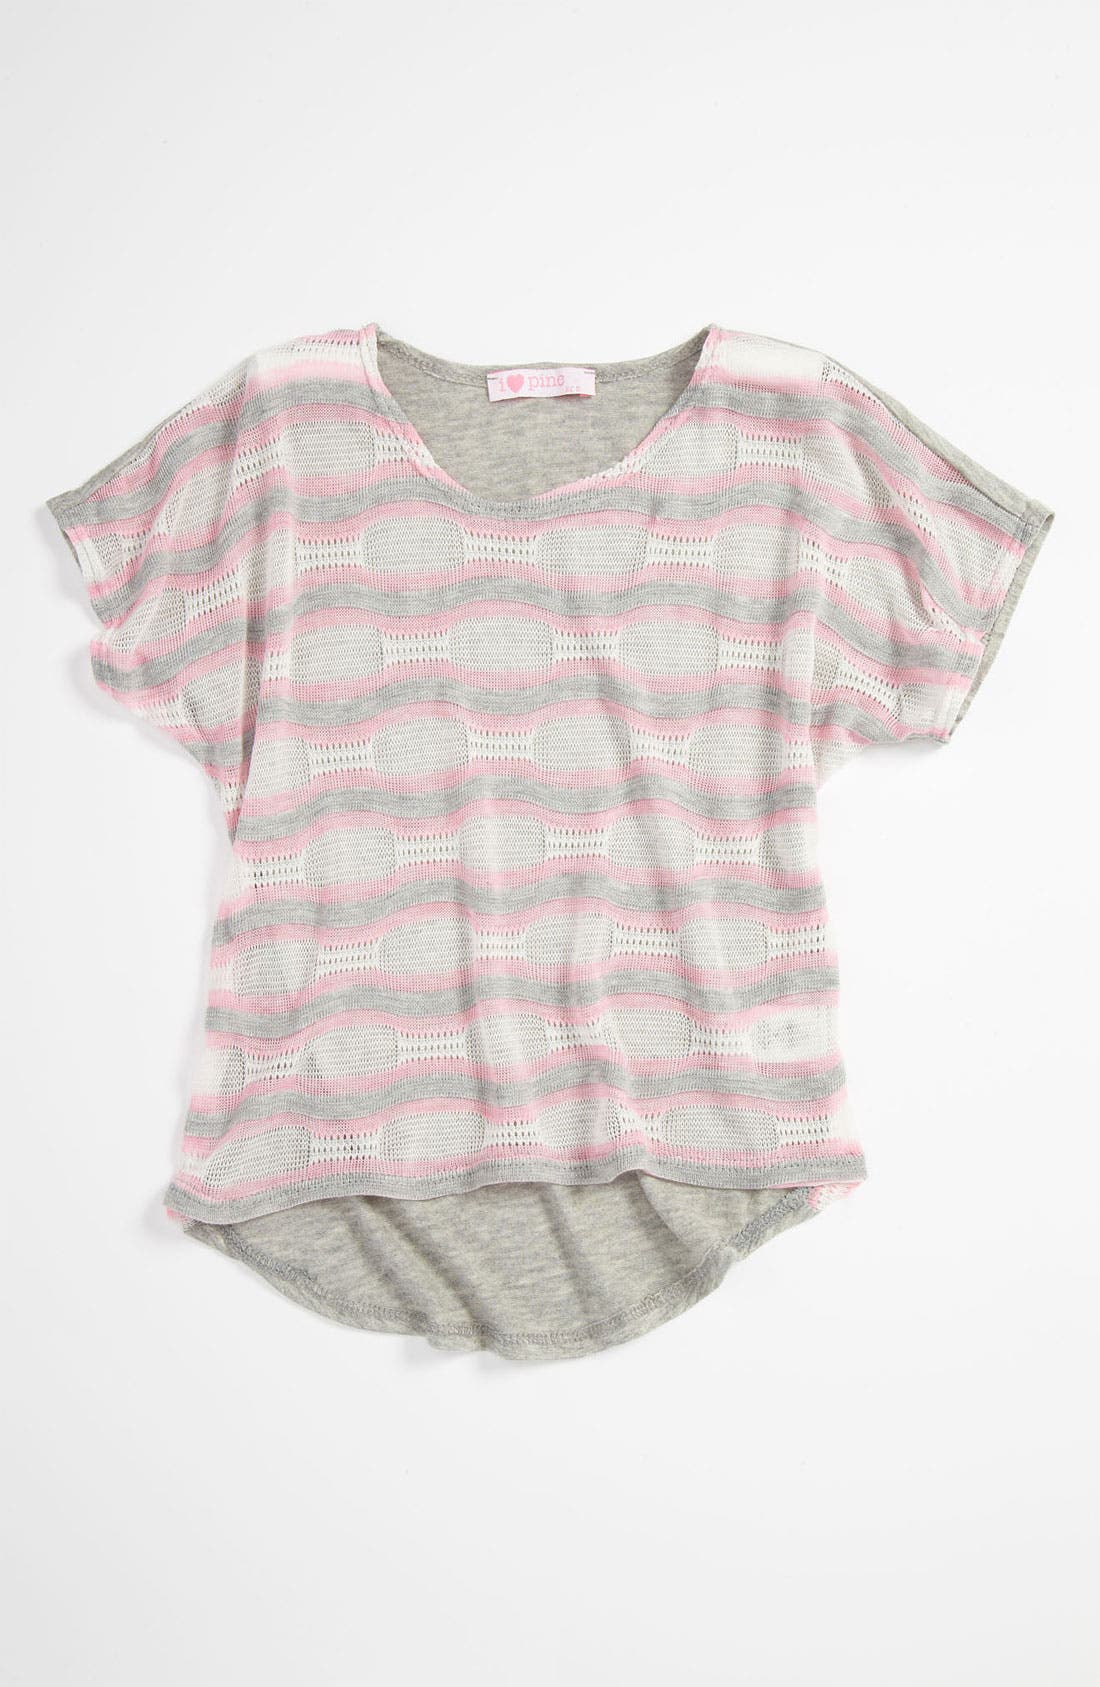 Alternate Image 1 Selected - I Heart Pinc Knit Top (Big Girls)